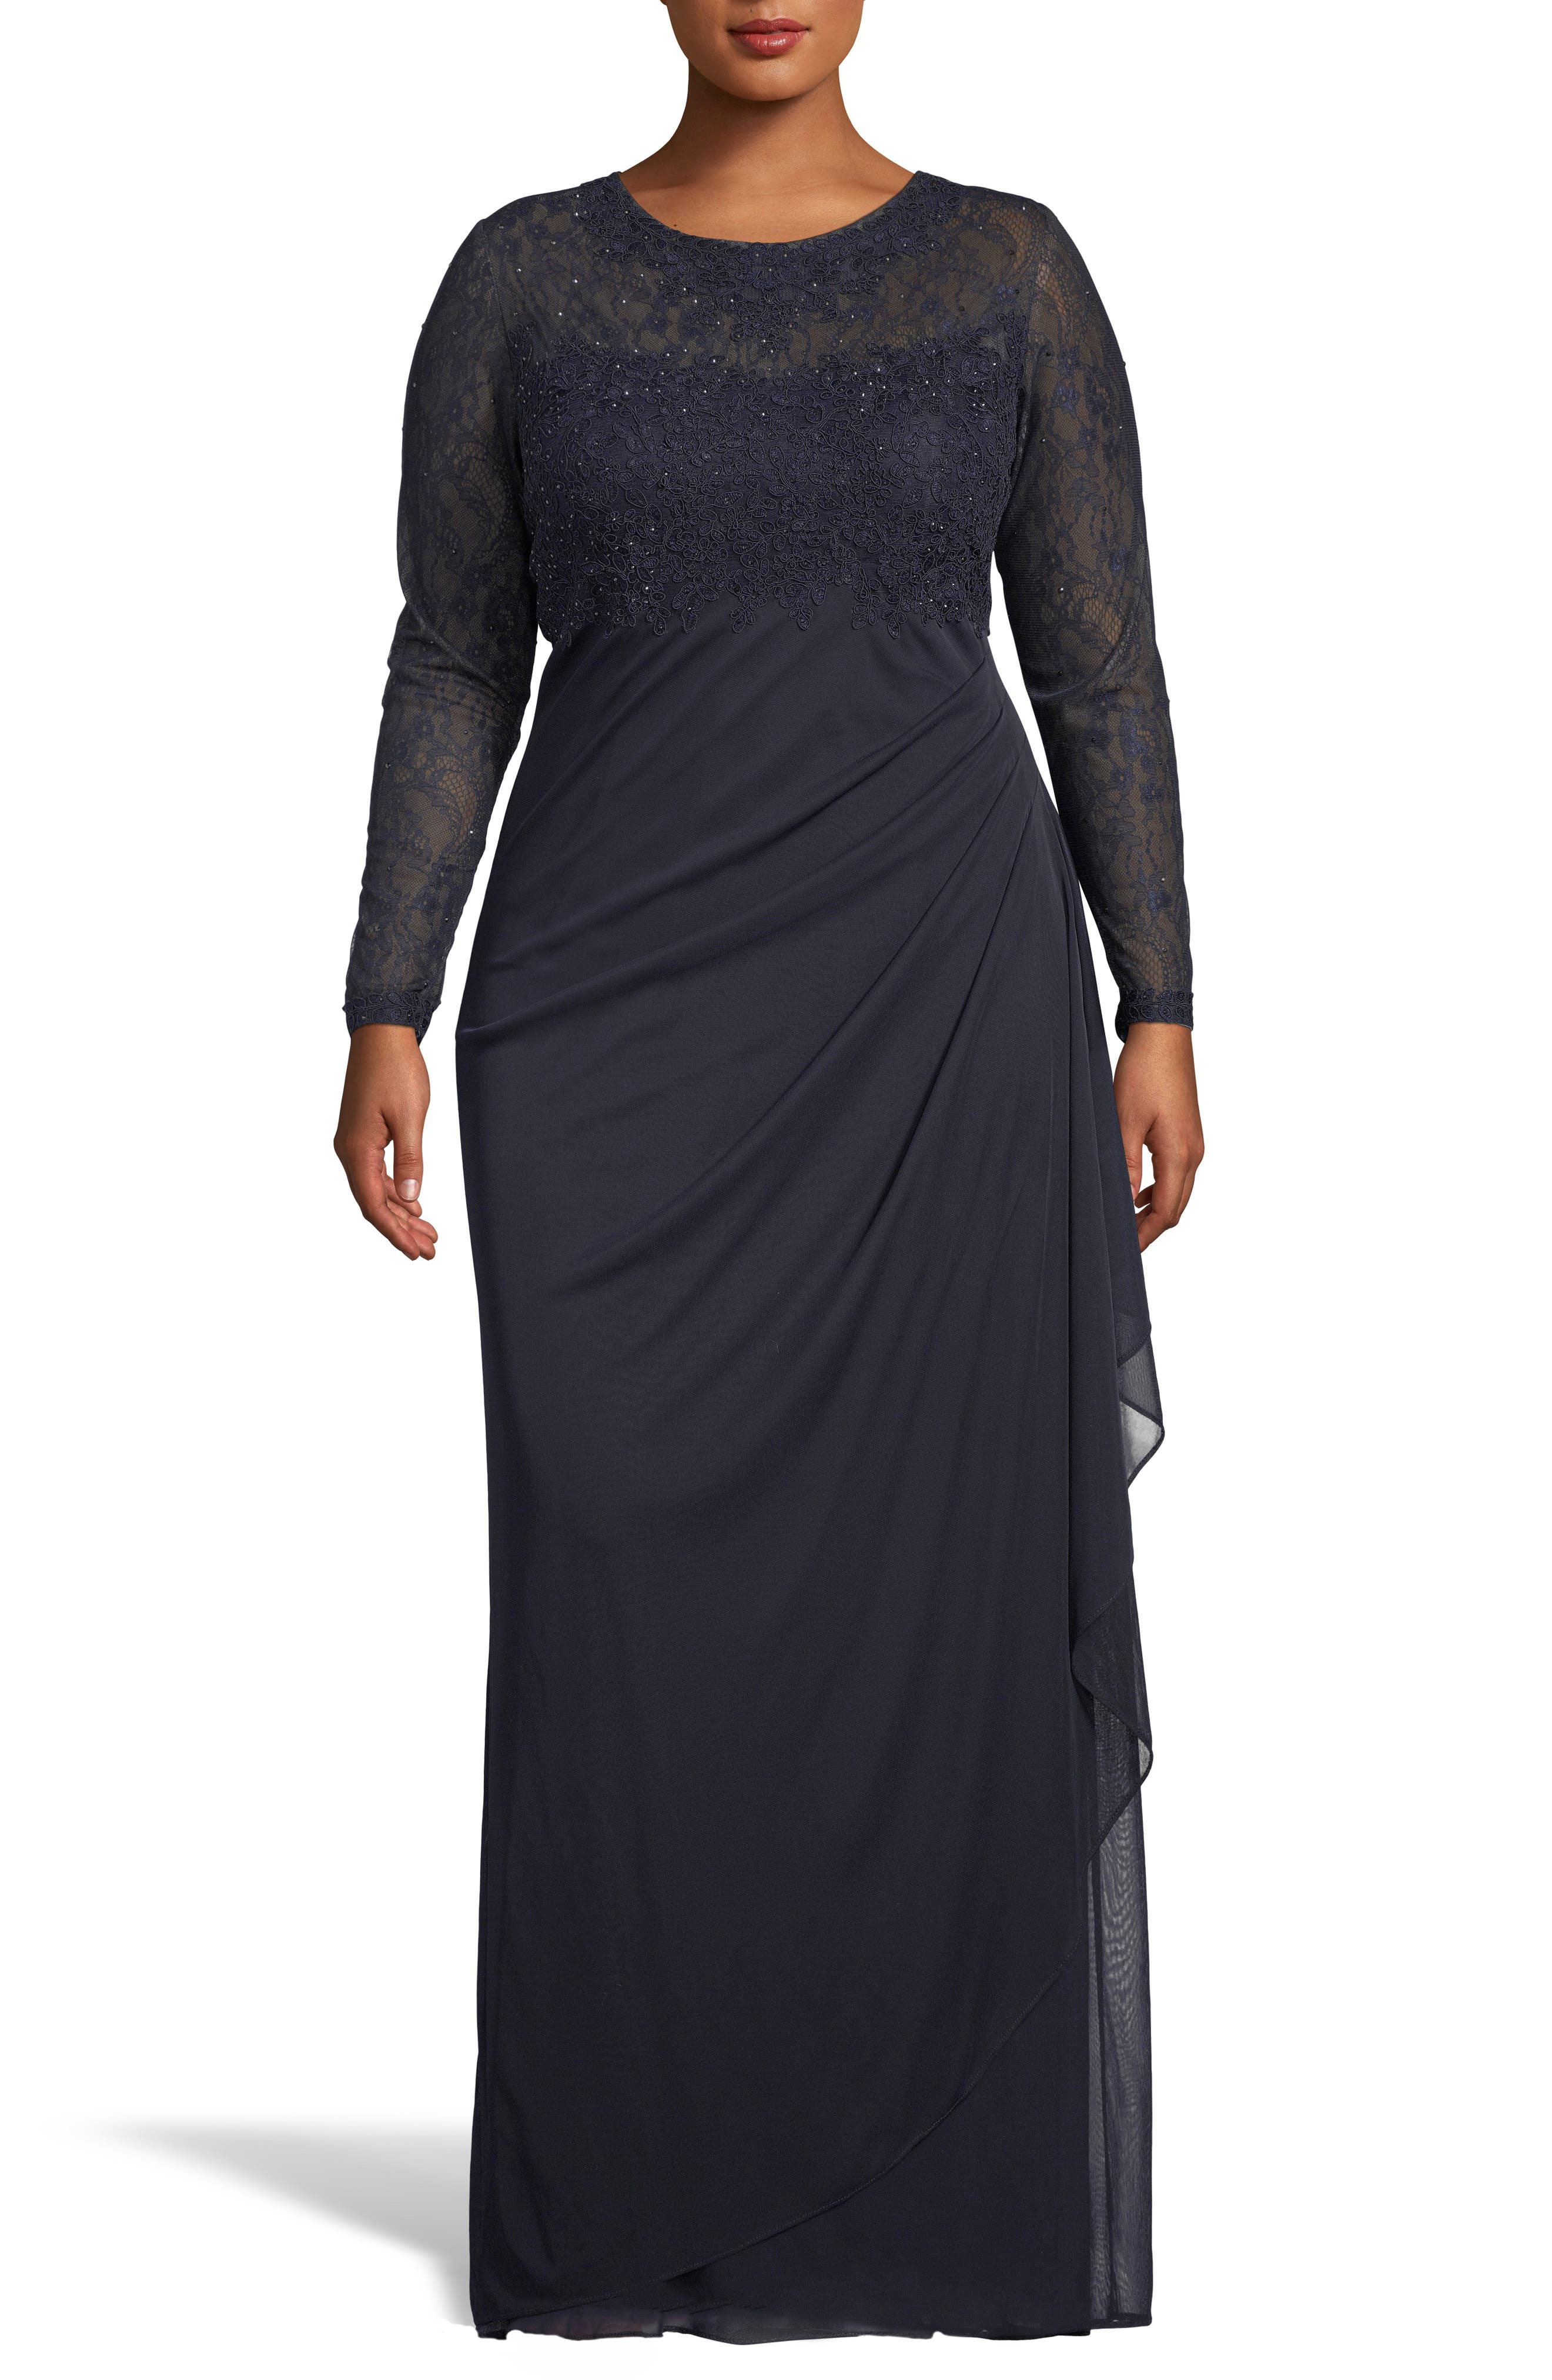 XSCAPE, Lace Bodice Ruched Evening Dress, Main thumbnail 1, color, NAVY